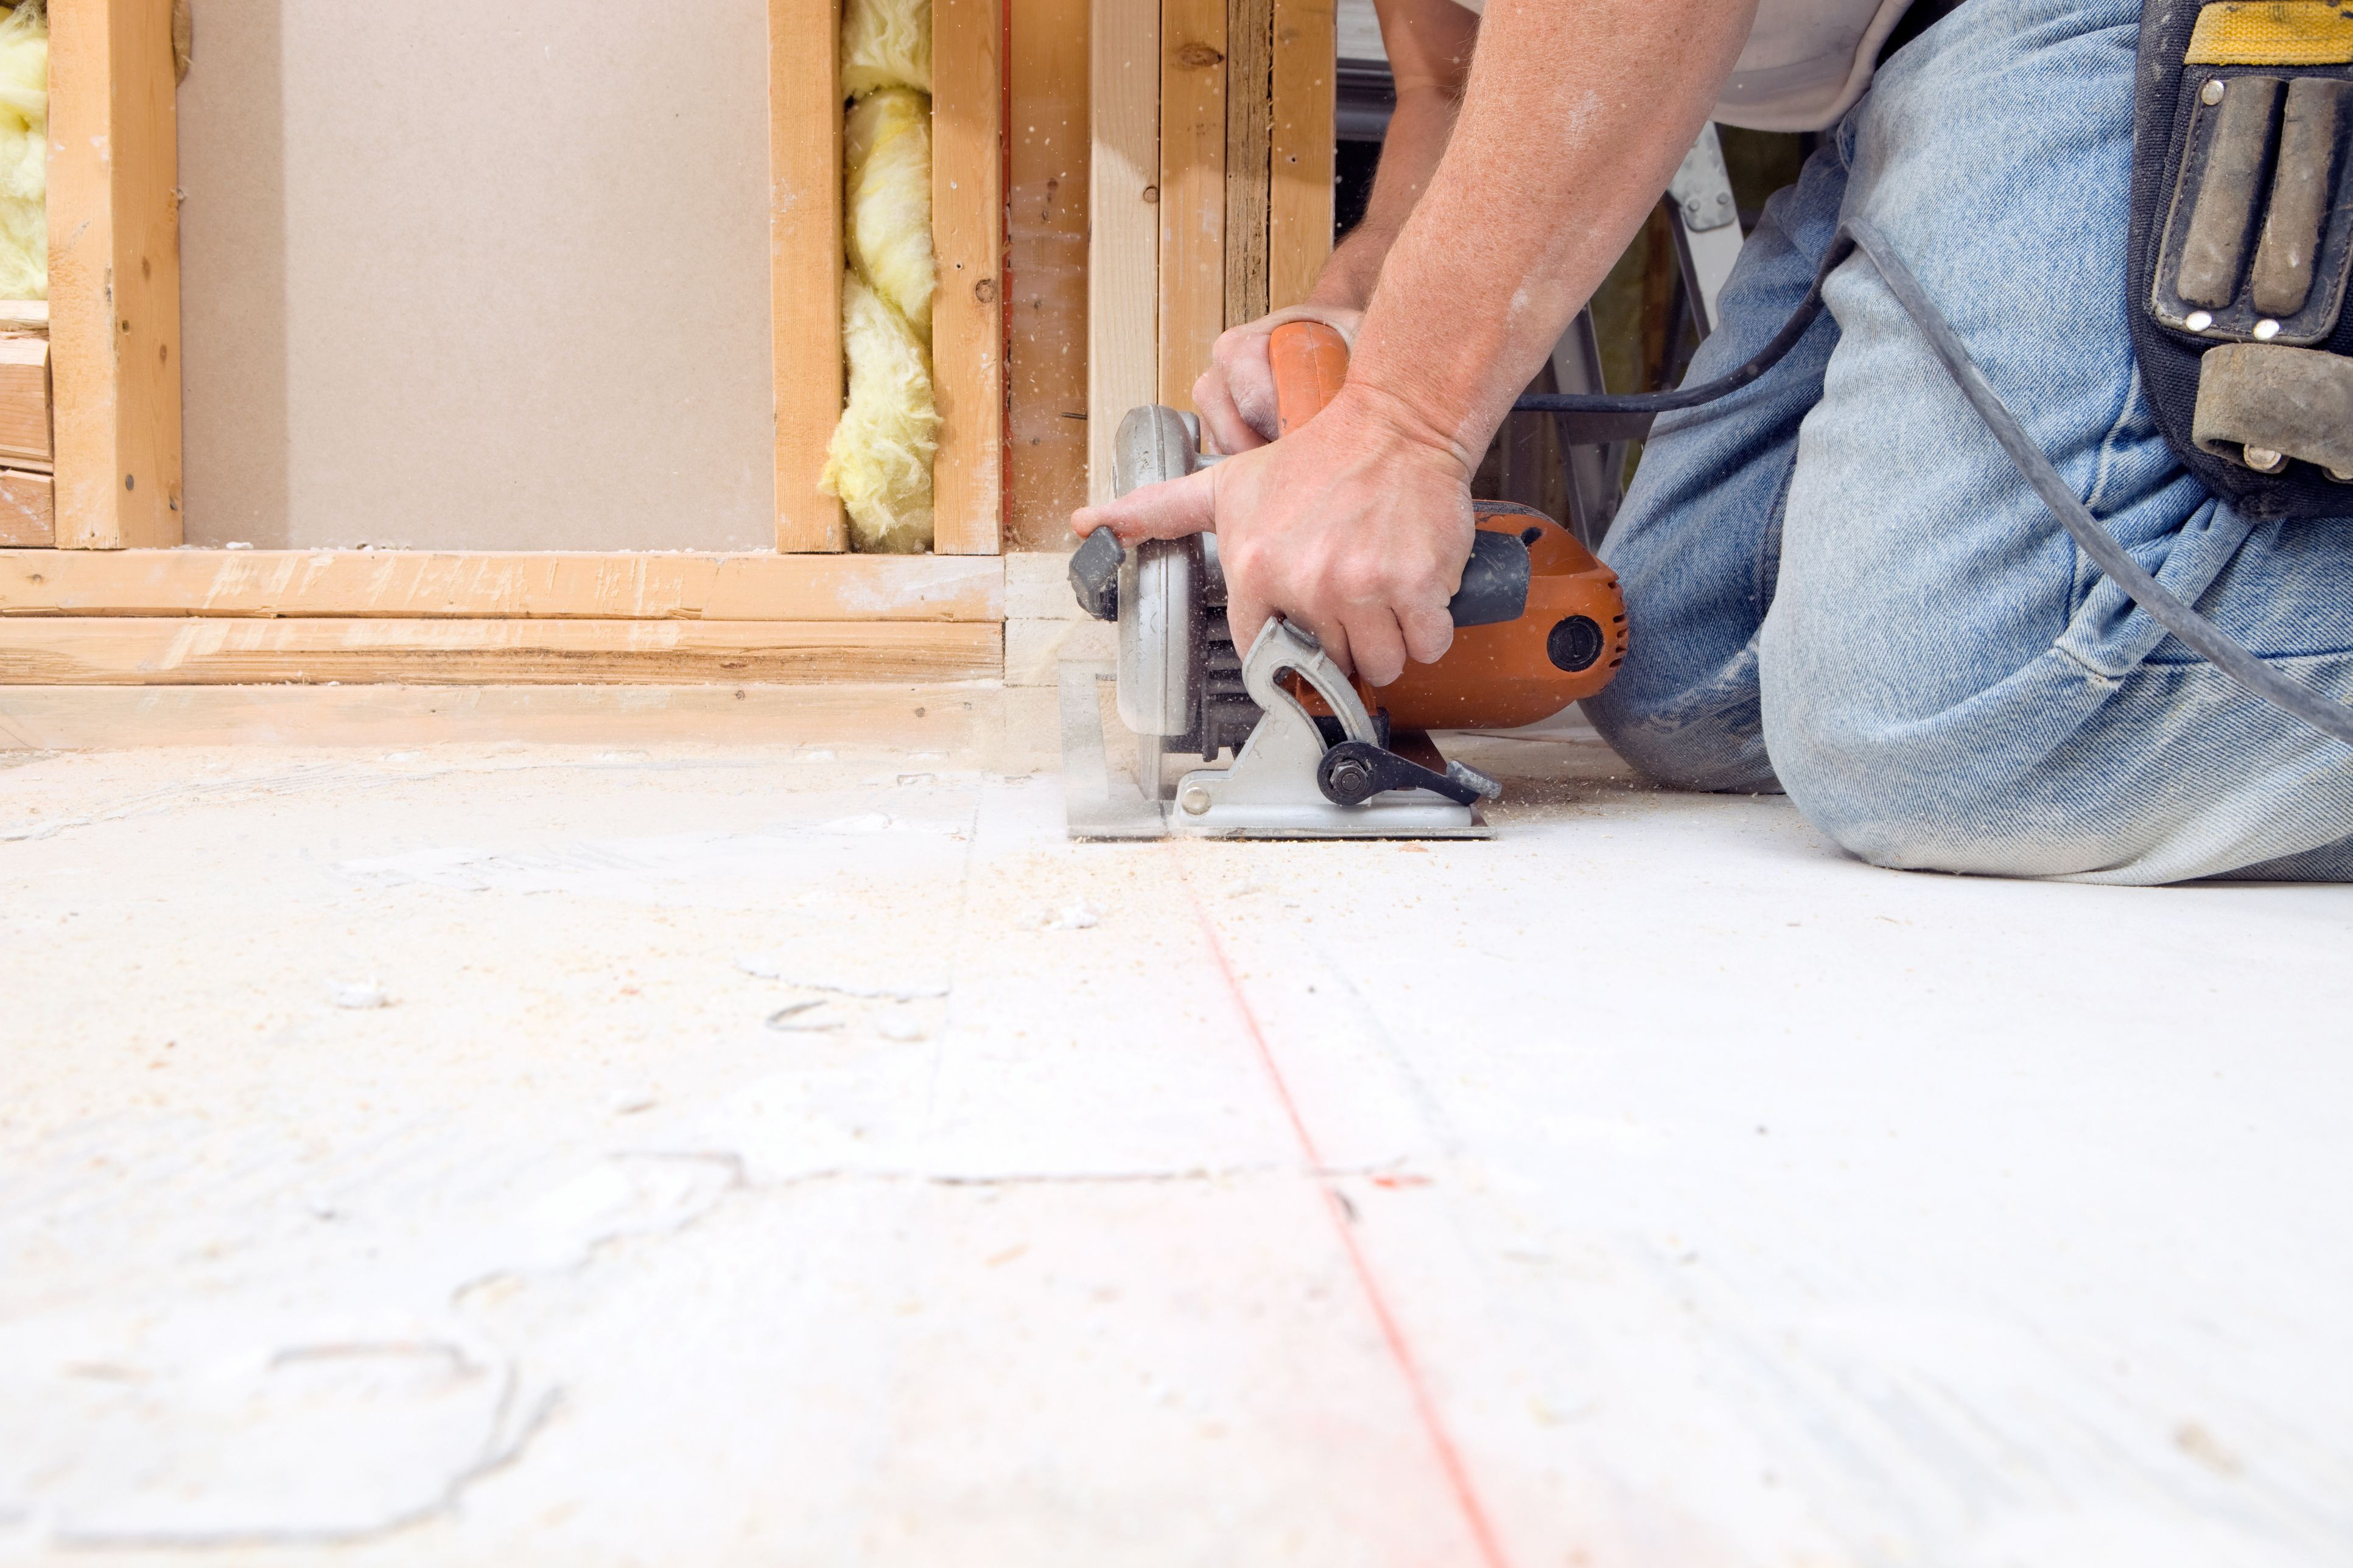 installing 3 4 hardwood flooring over concrete of subfloor underlayment joists guide to floor layers throughout circular saw cutting subfloor for house remodeling project 185001220 57f51afd3df78c690fcf20ce